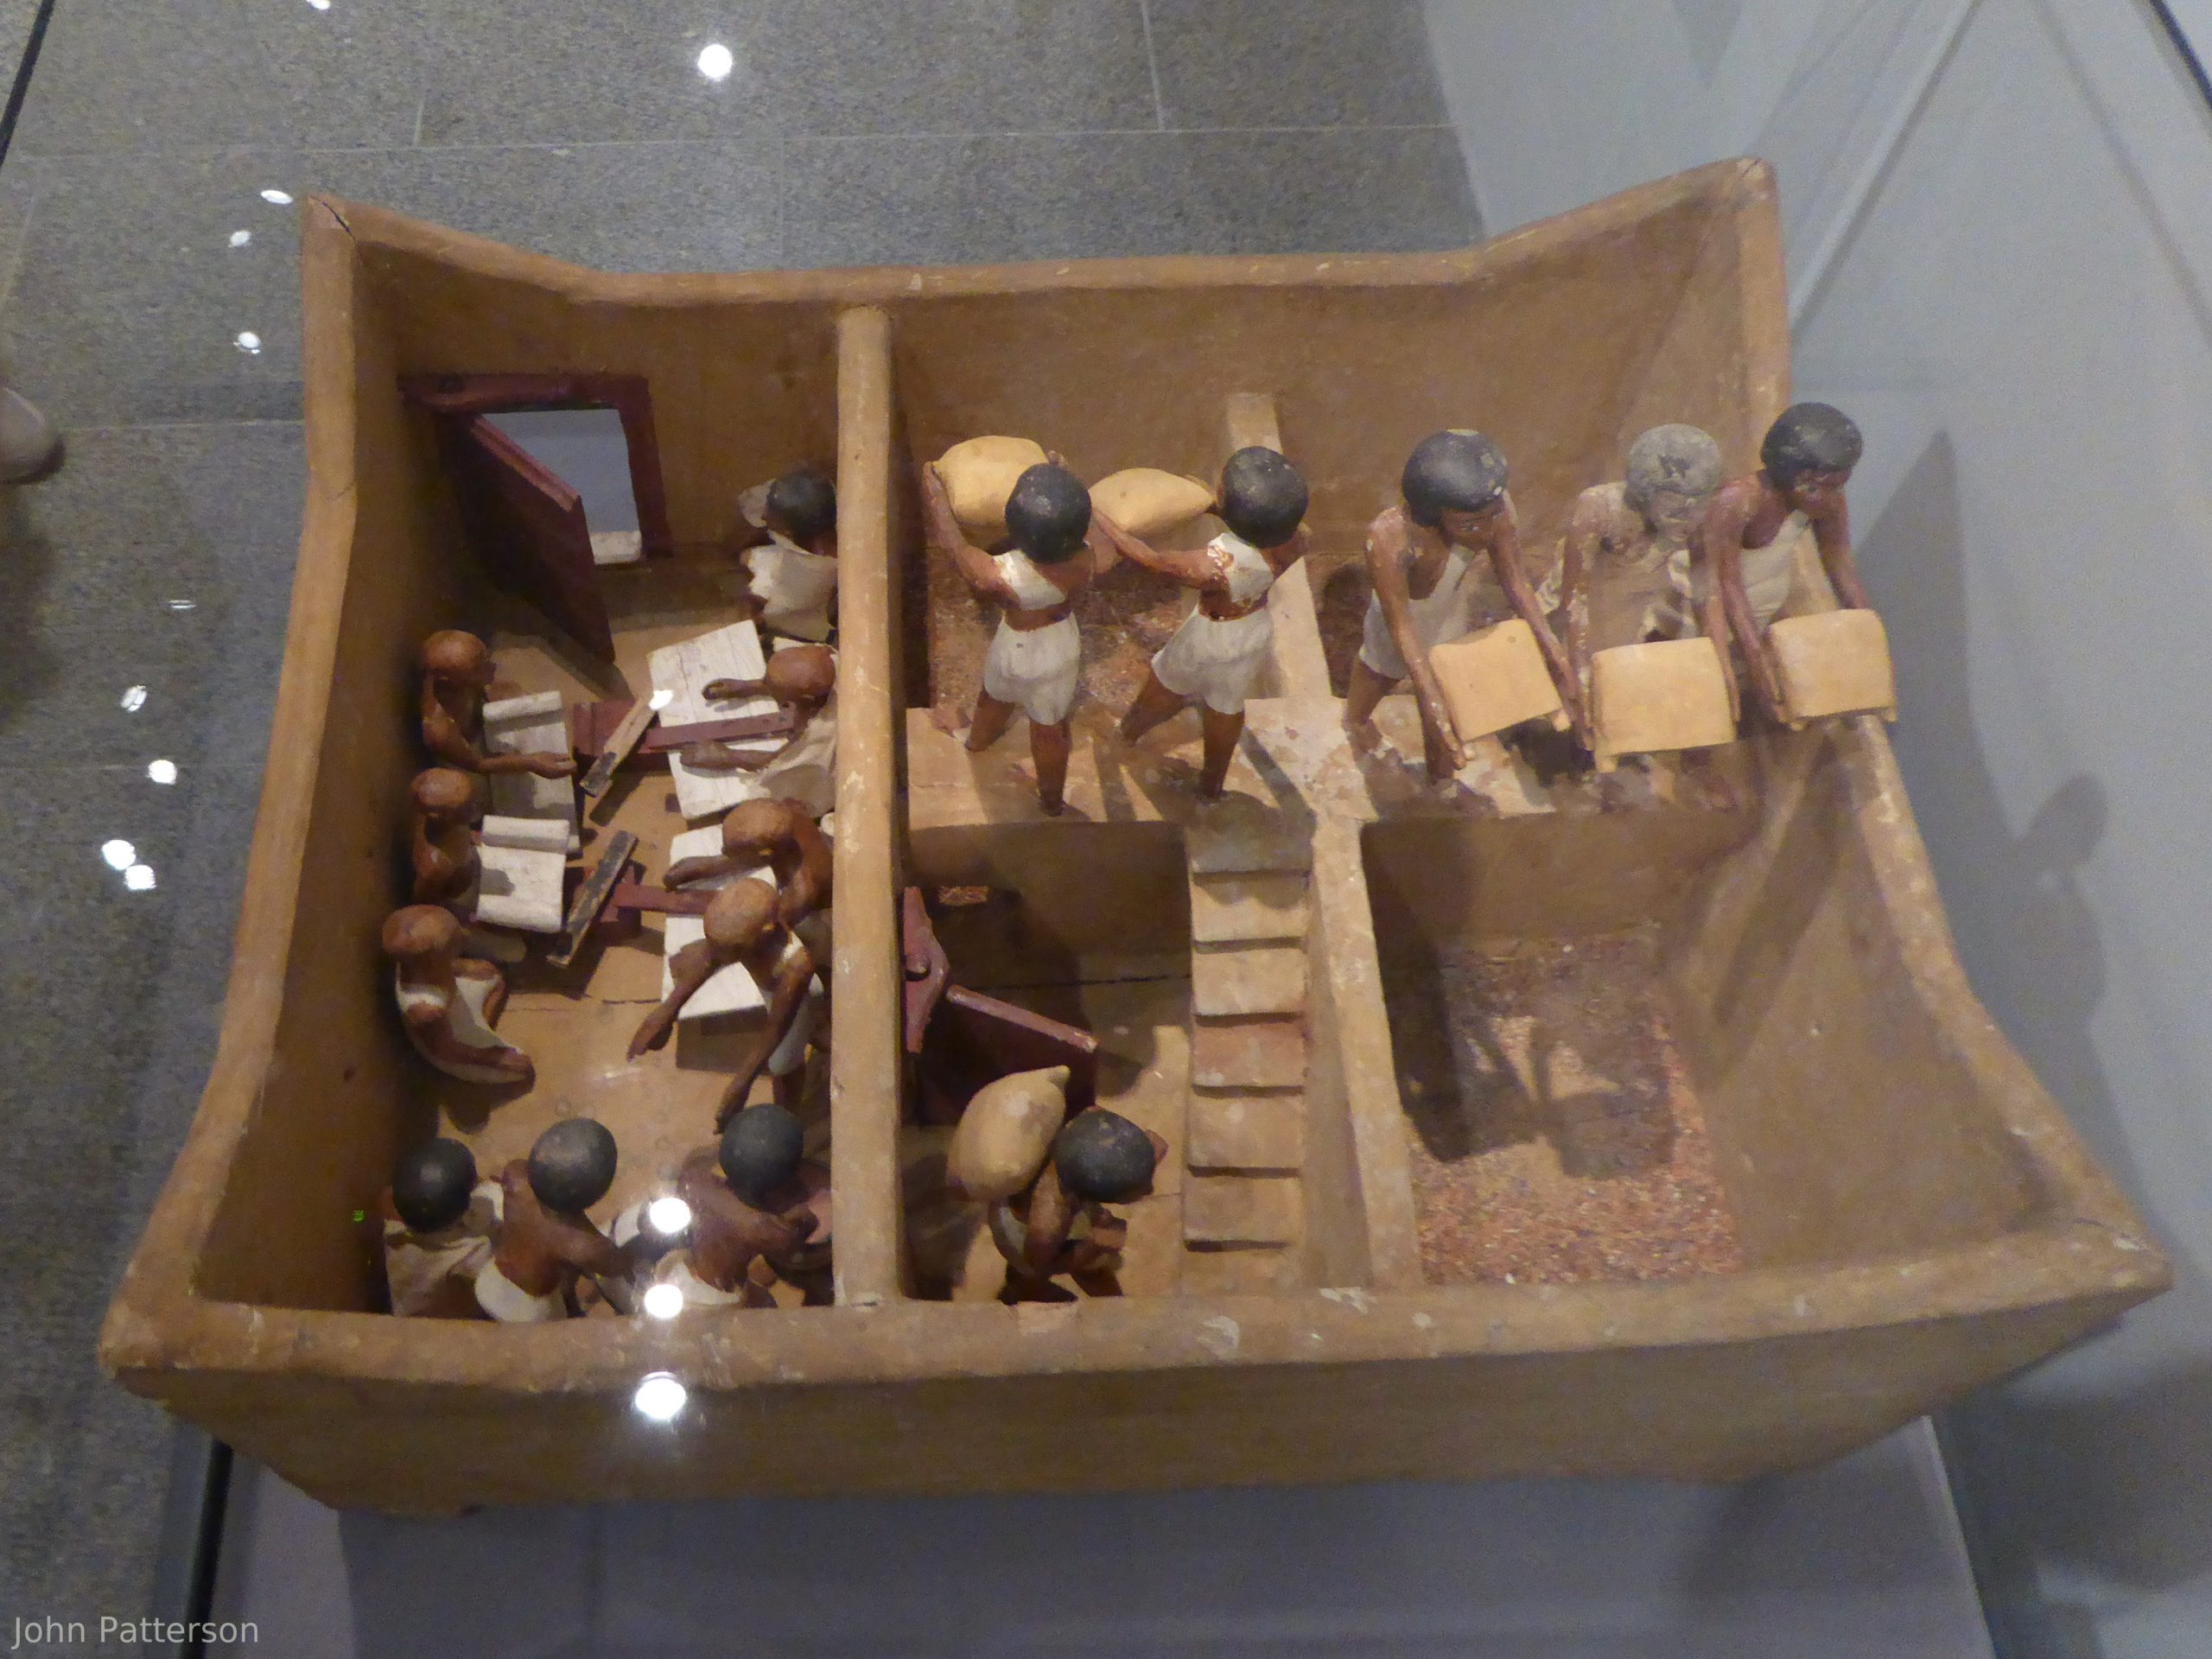 A photo of a tomb model of a granary from the Middle Kingdom tomb of Meketre in the Met Museum